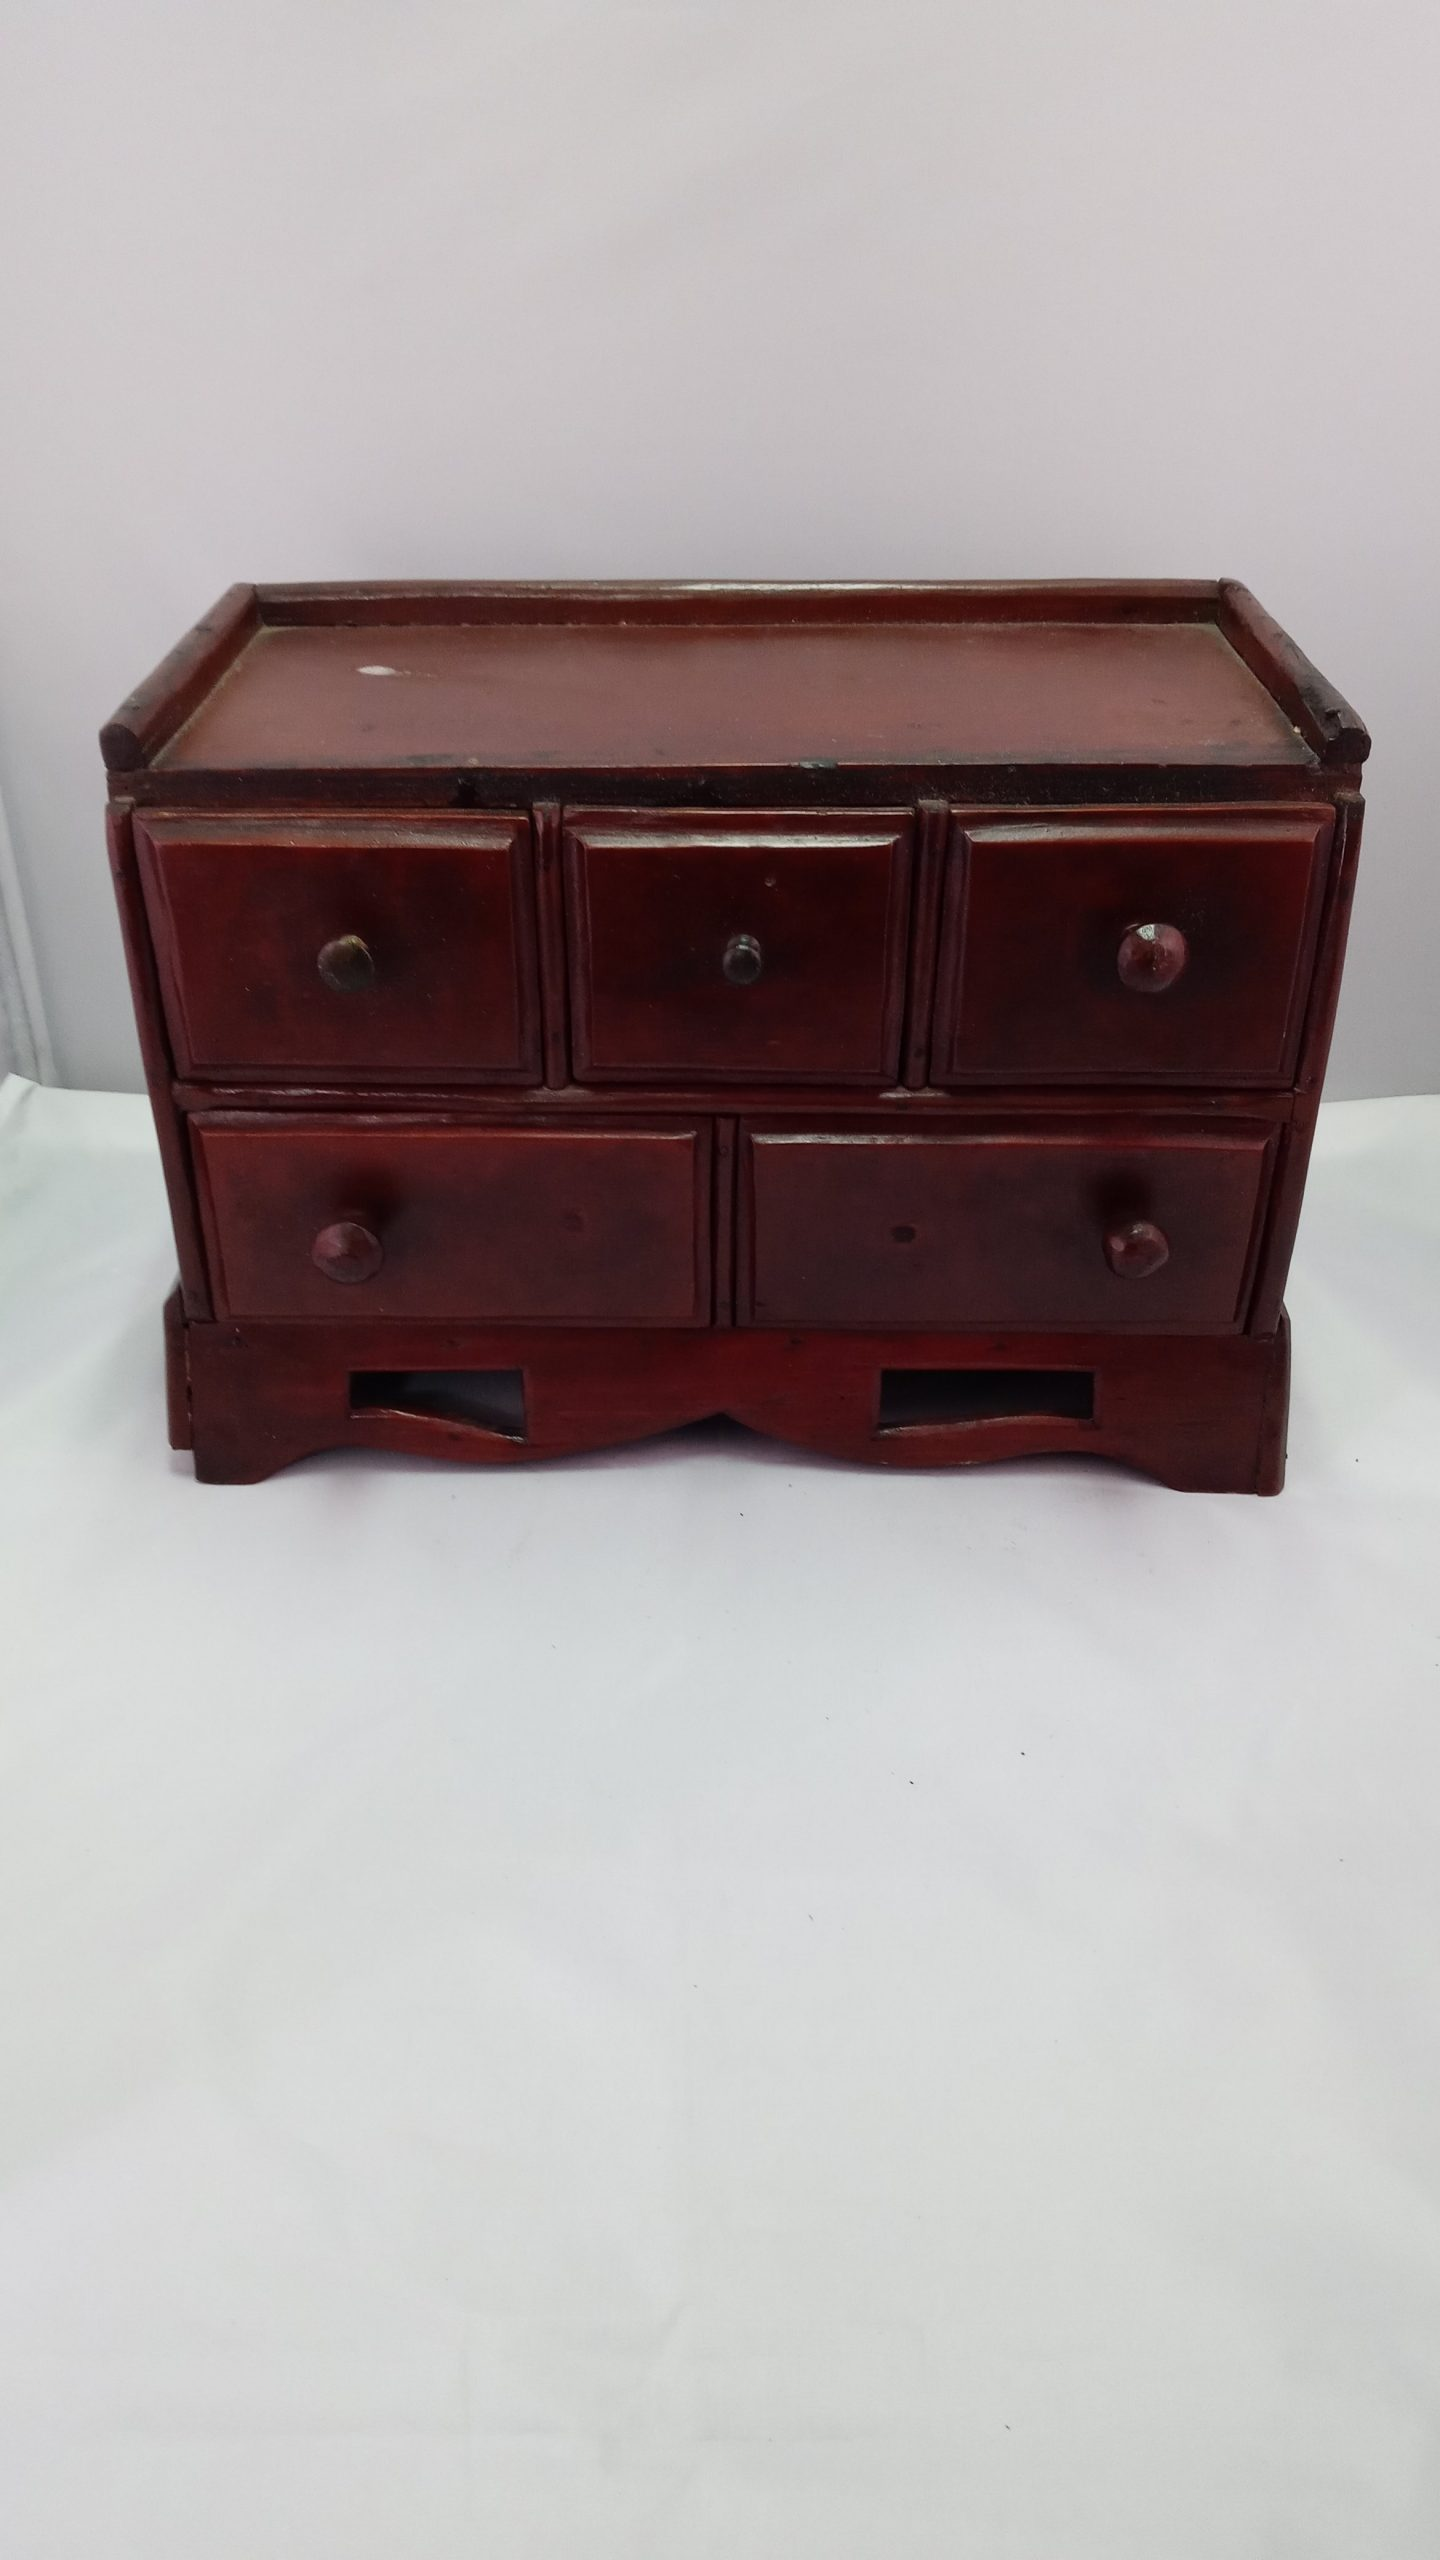 19-33287 folky country five drawer spice chest with molded overlapping drawers, flared cutout scalloped base, original red paint, 3rd quarter 19th century Image